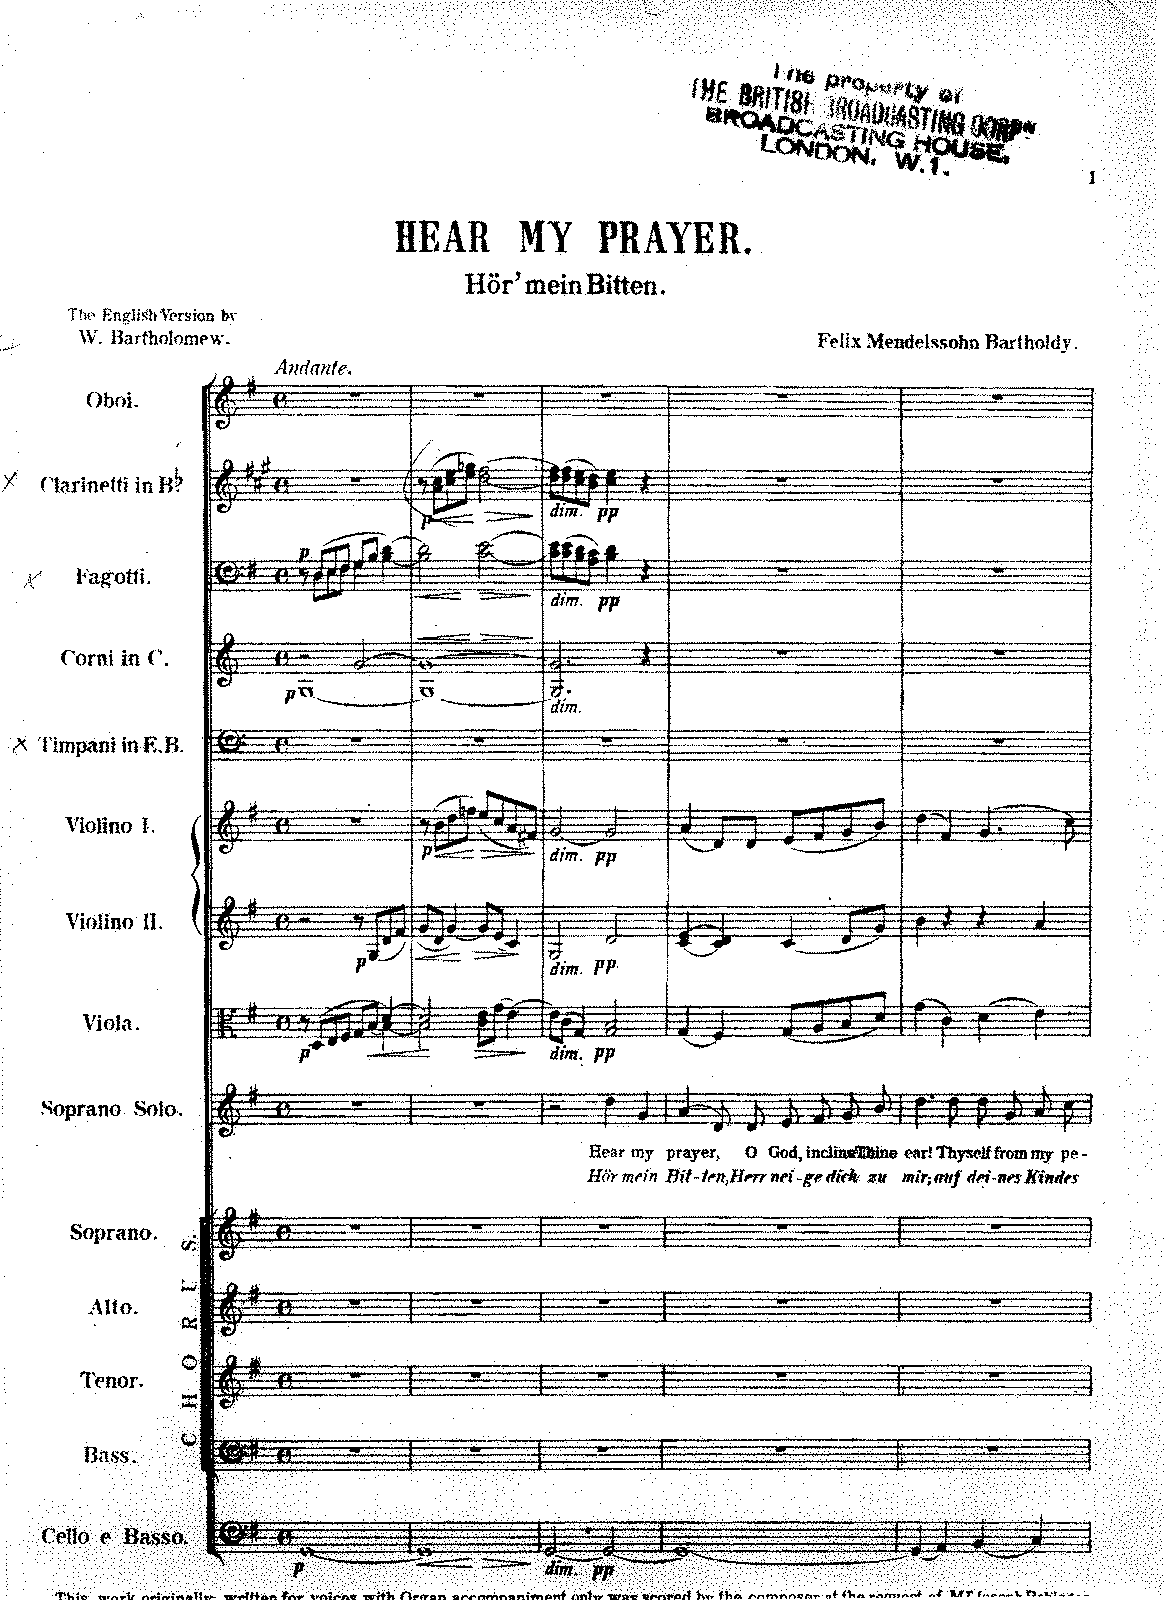 PMLP89752-Mend-Hear My Prayer orch.pdf